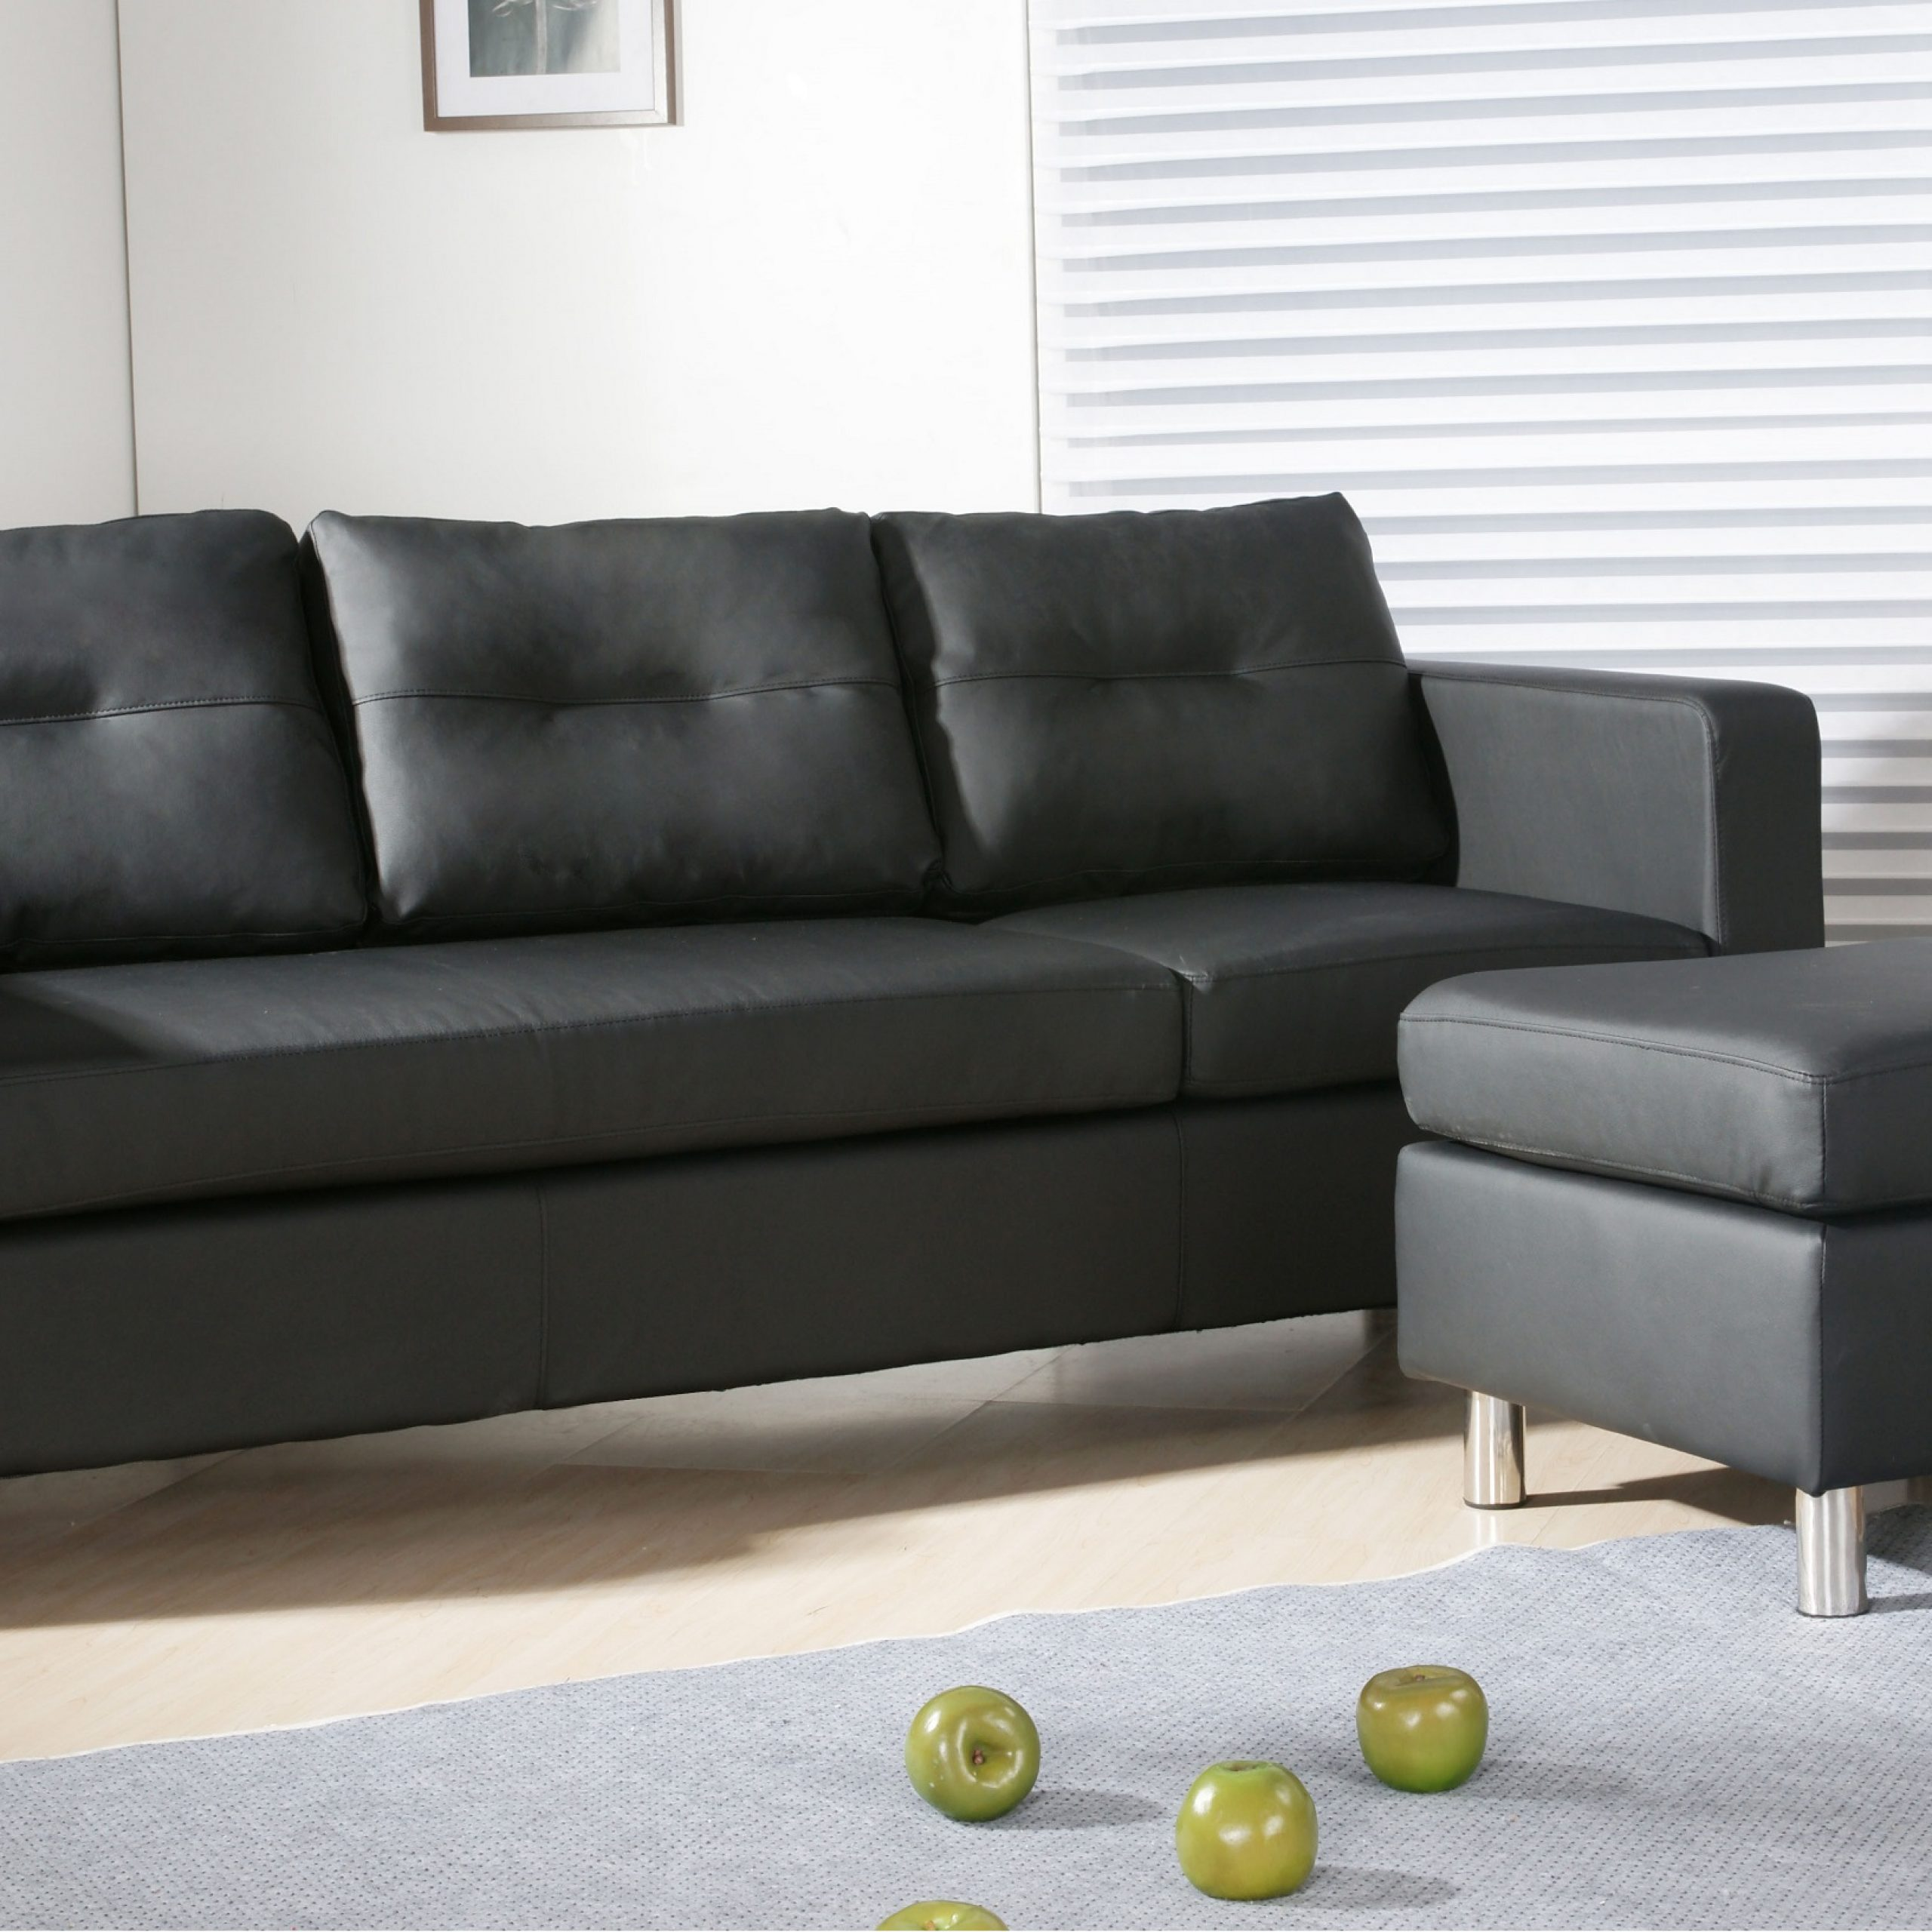 Caius Modern Faux Leather Configurable Left And Right Intended For Current Wynne Contemporary Sectional Sofas Black (View 1 of 20)